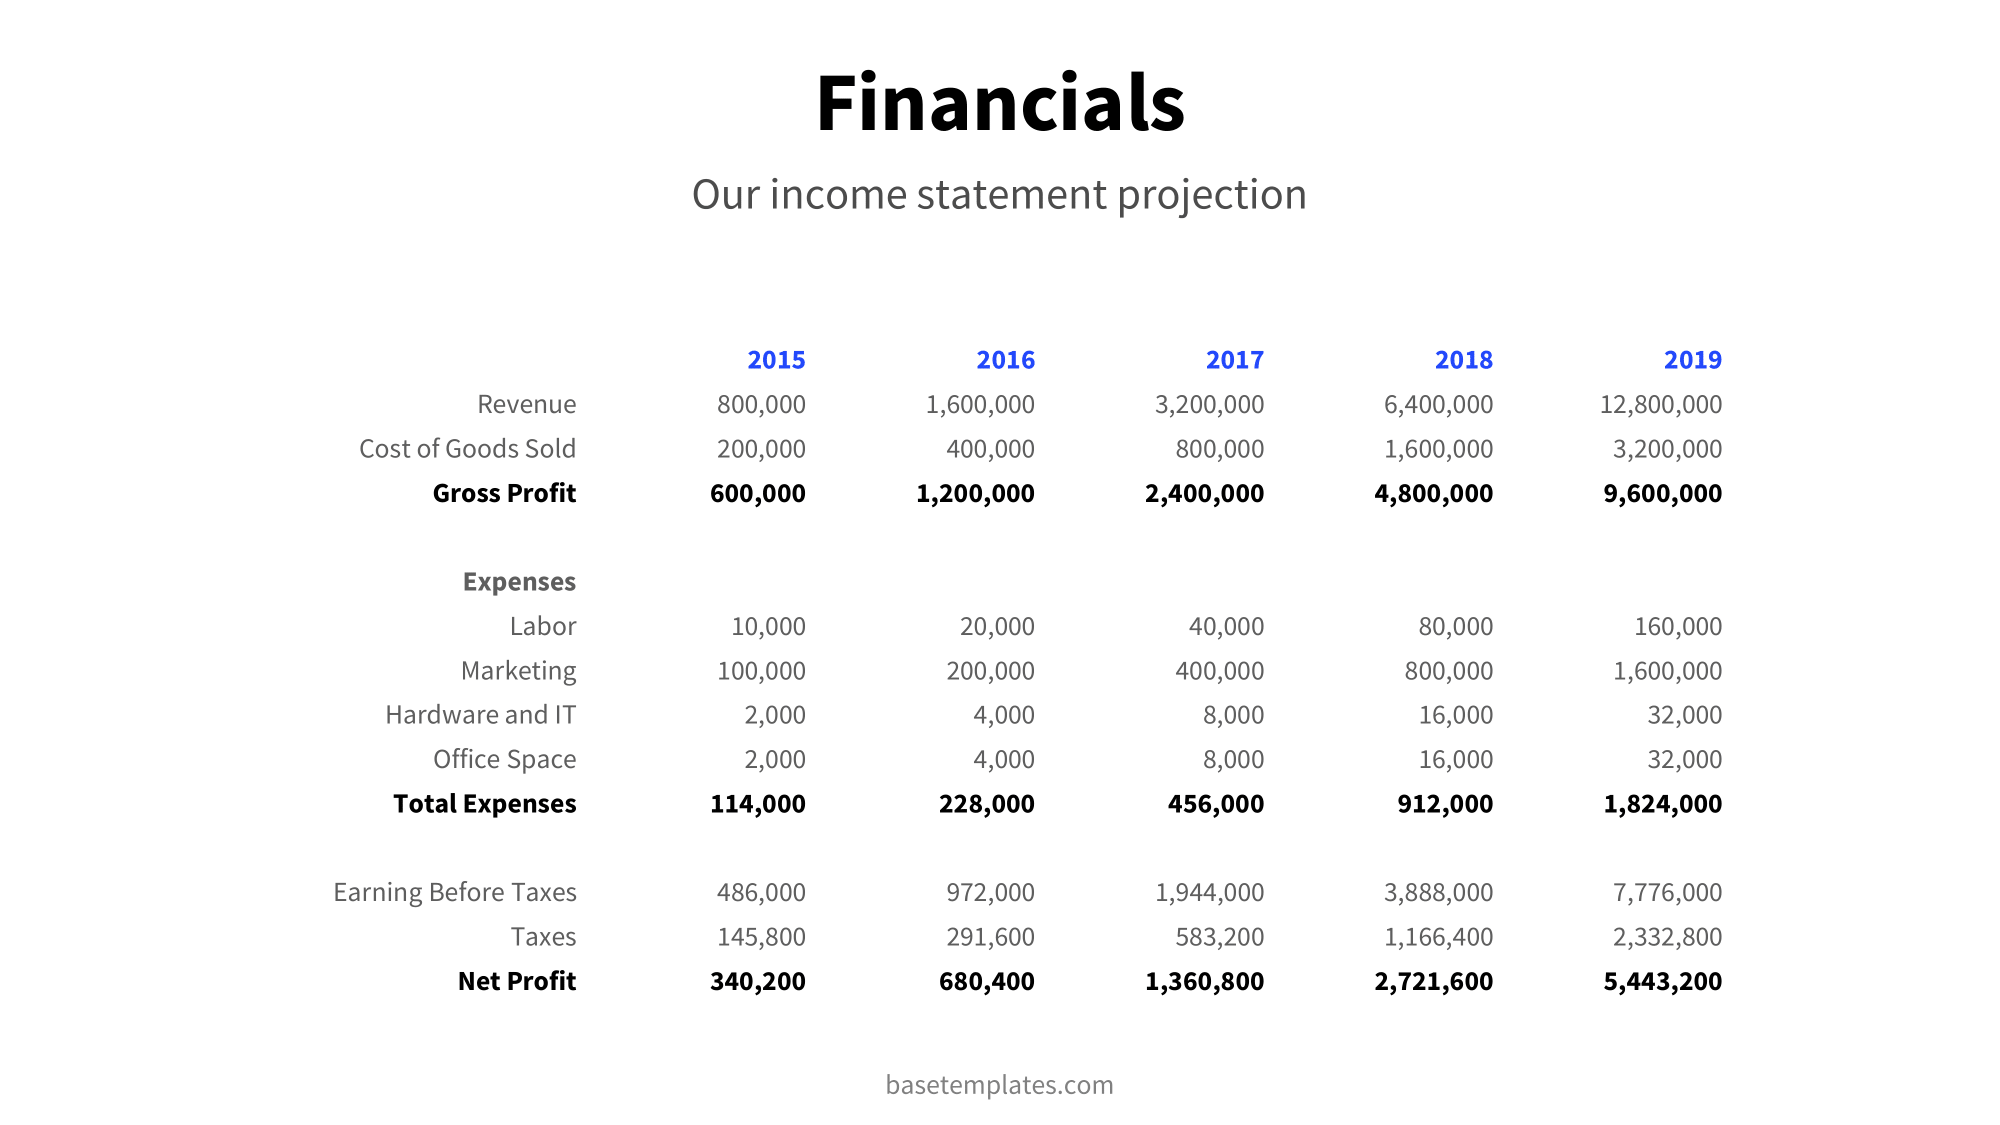 Financials slide with detailed information about the company